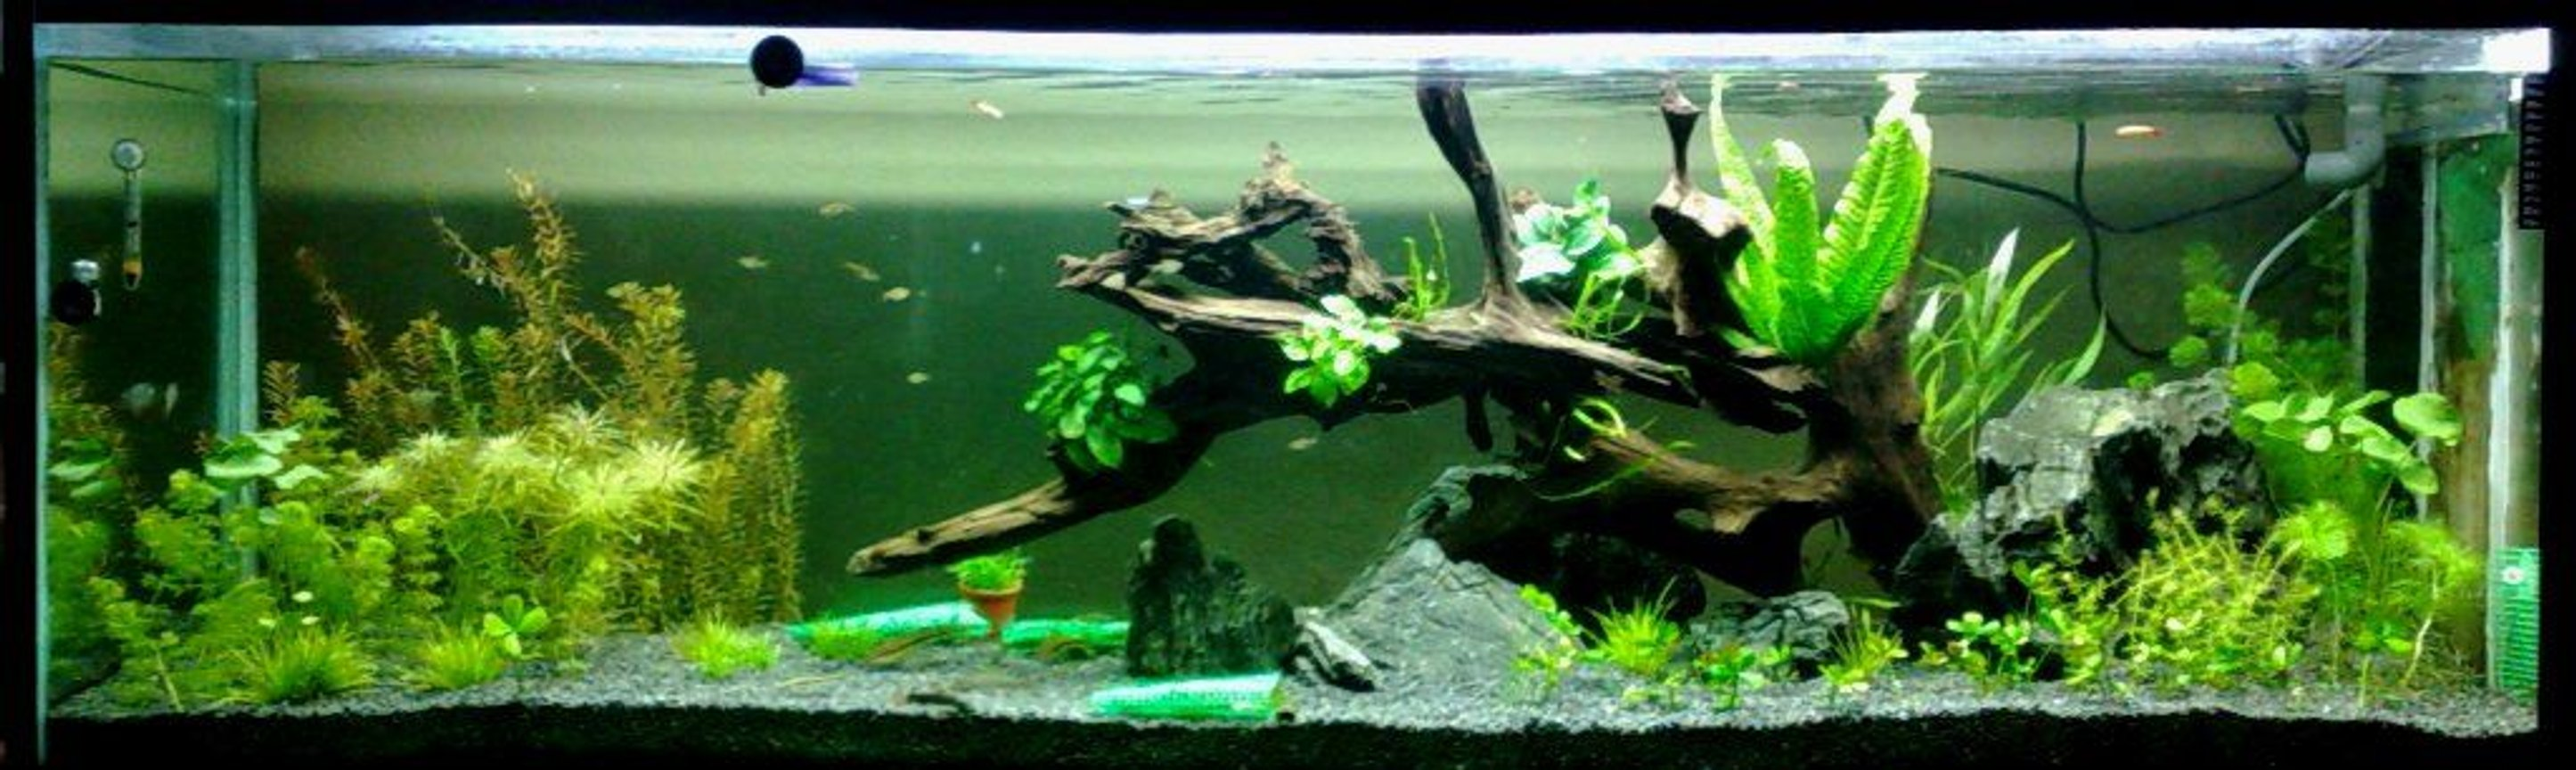 164 gallons planted tank (mostly live plants and fish) - Tank under scaping .... Sept 2008